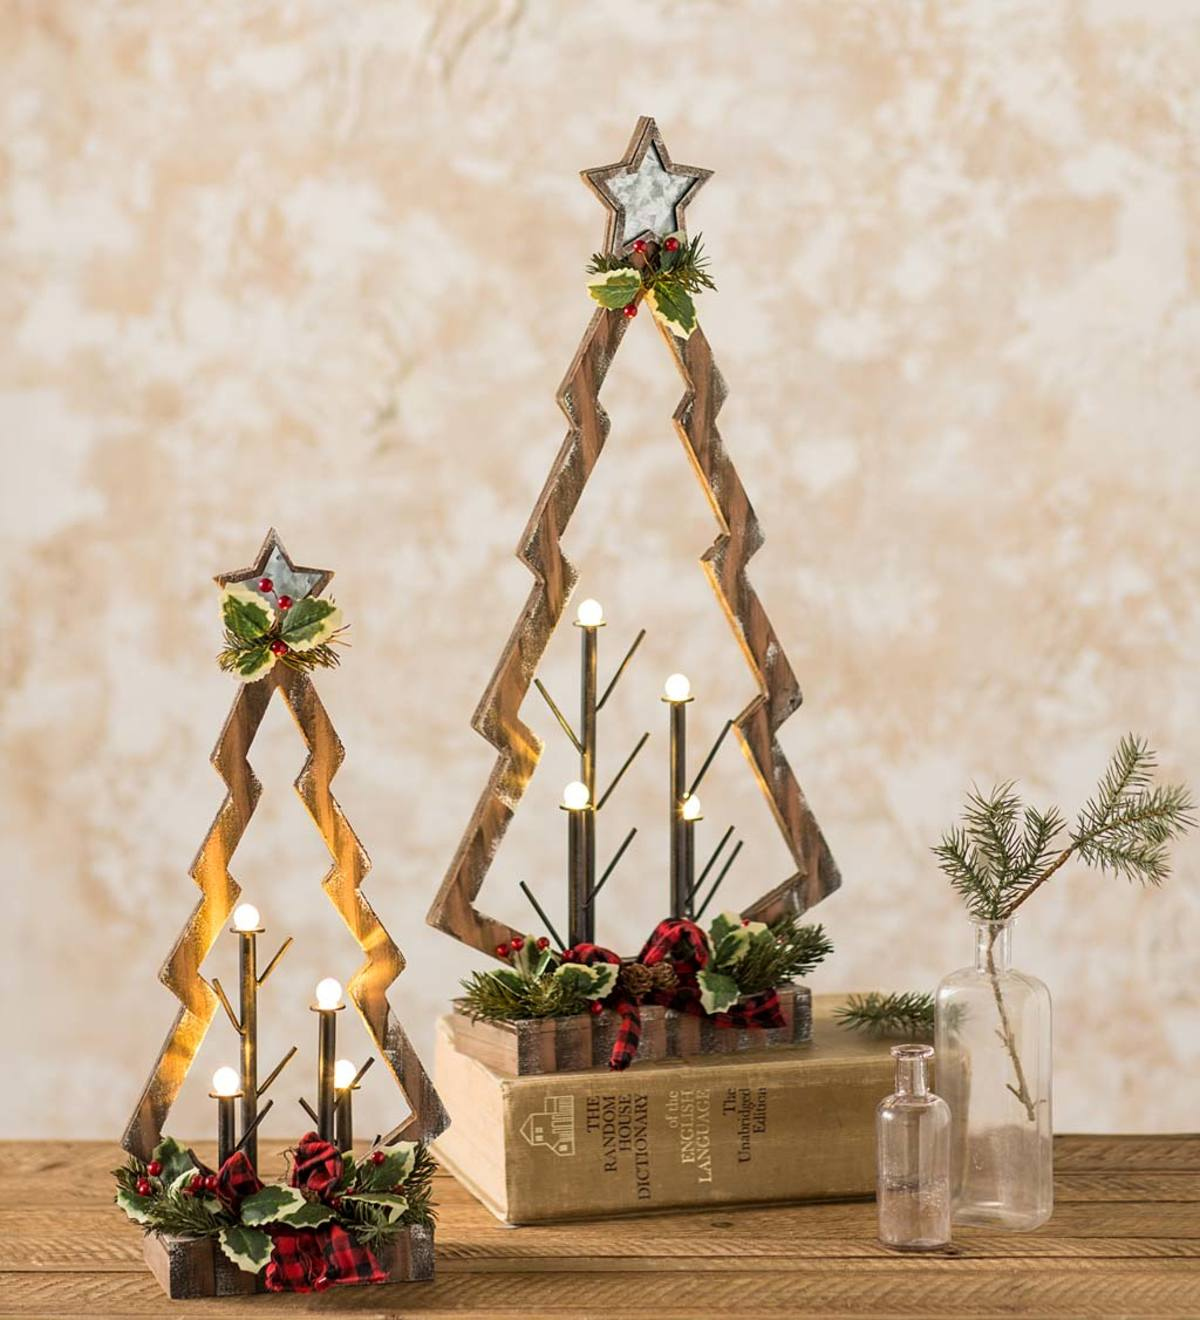 Tabletop Lighted Wooden Christmas Trees, Set of 2